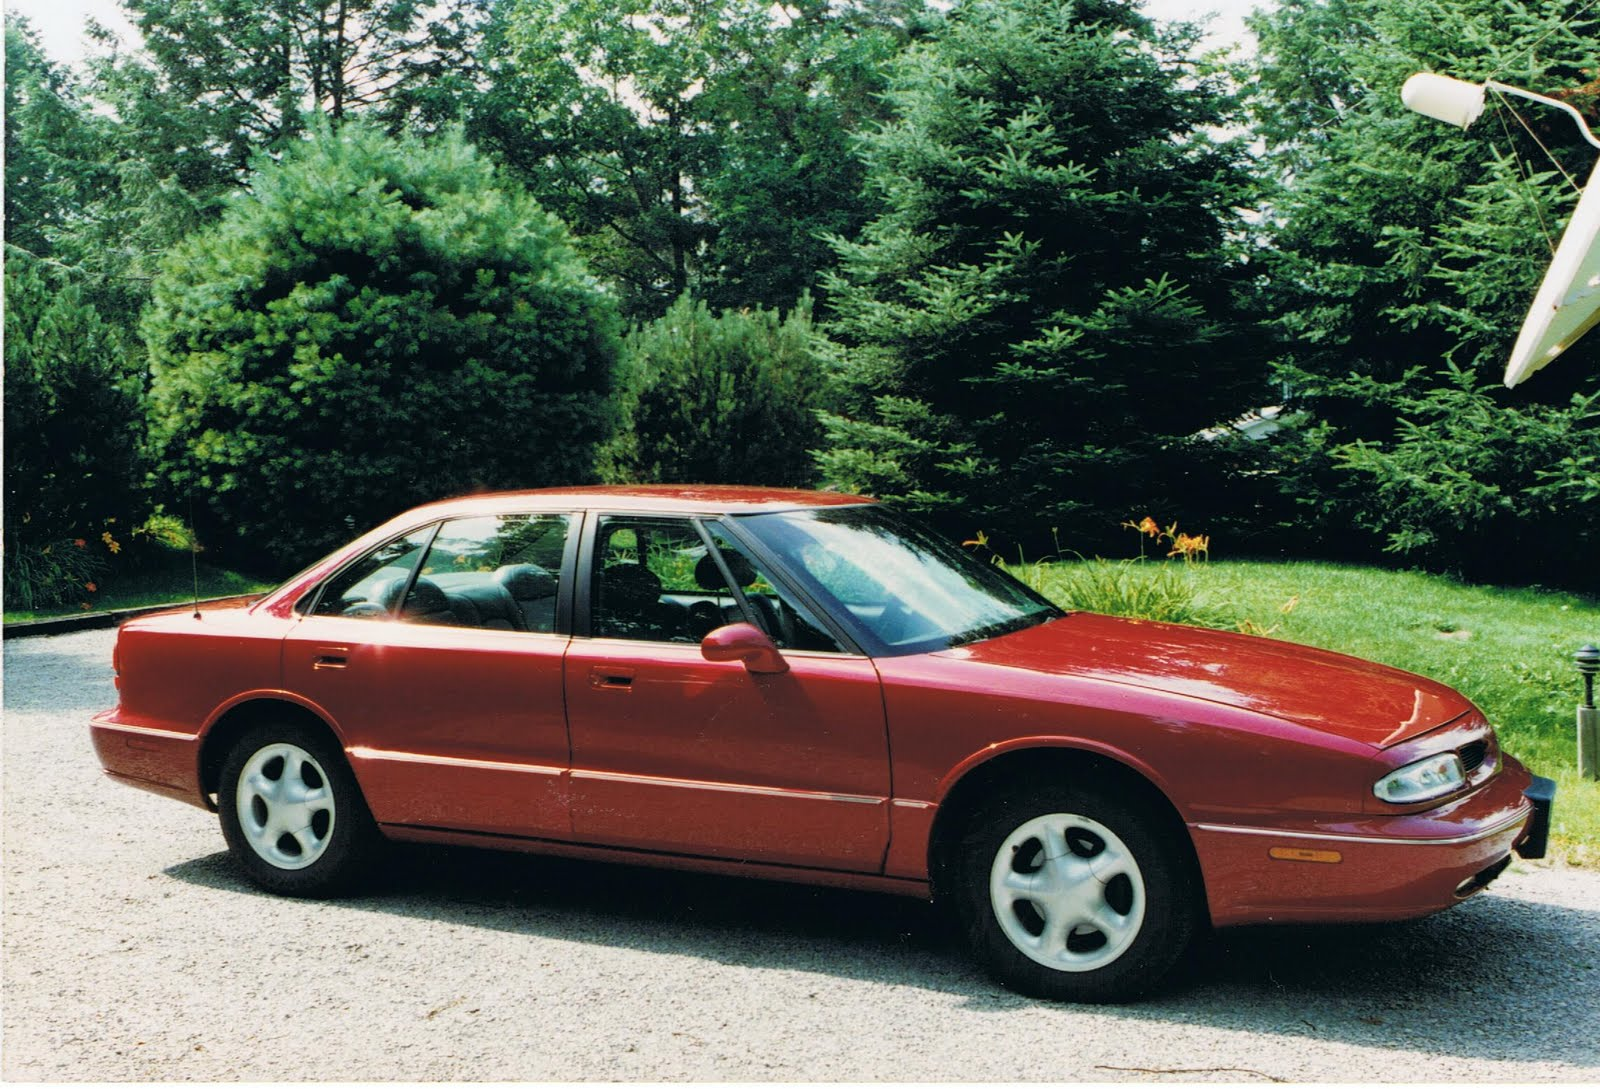 hight resolution of 19961998 oldsmobile lss the last of your father s oldsmobiles rhautopoliswordpress 1996 oldsmobile 88 ls at